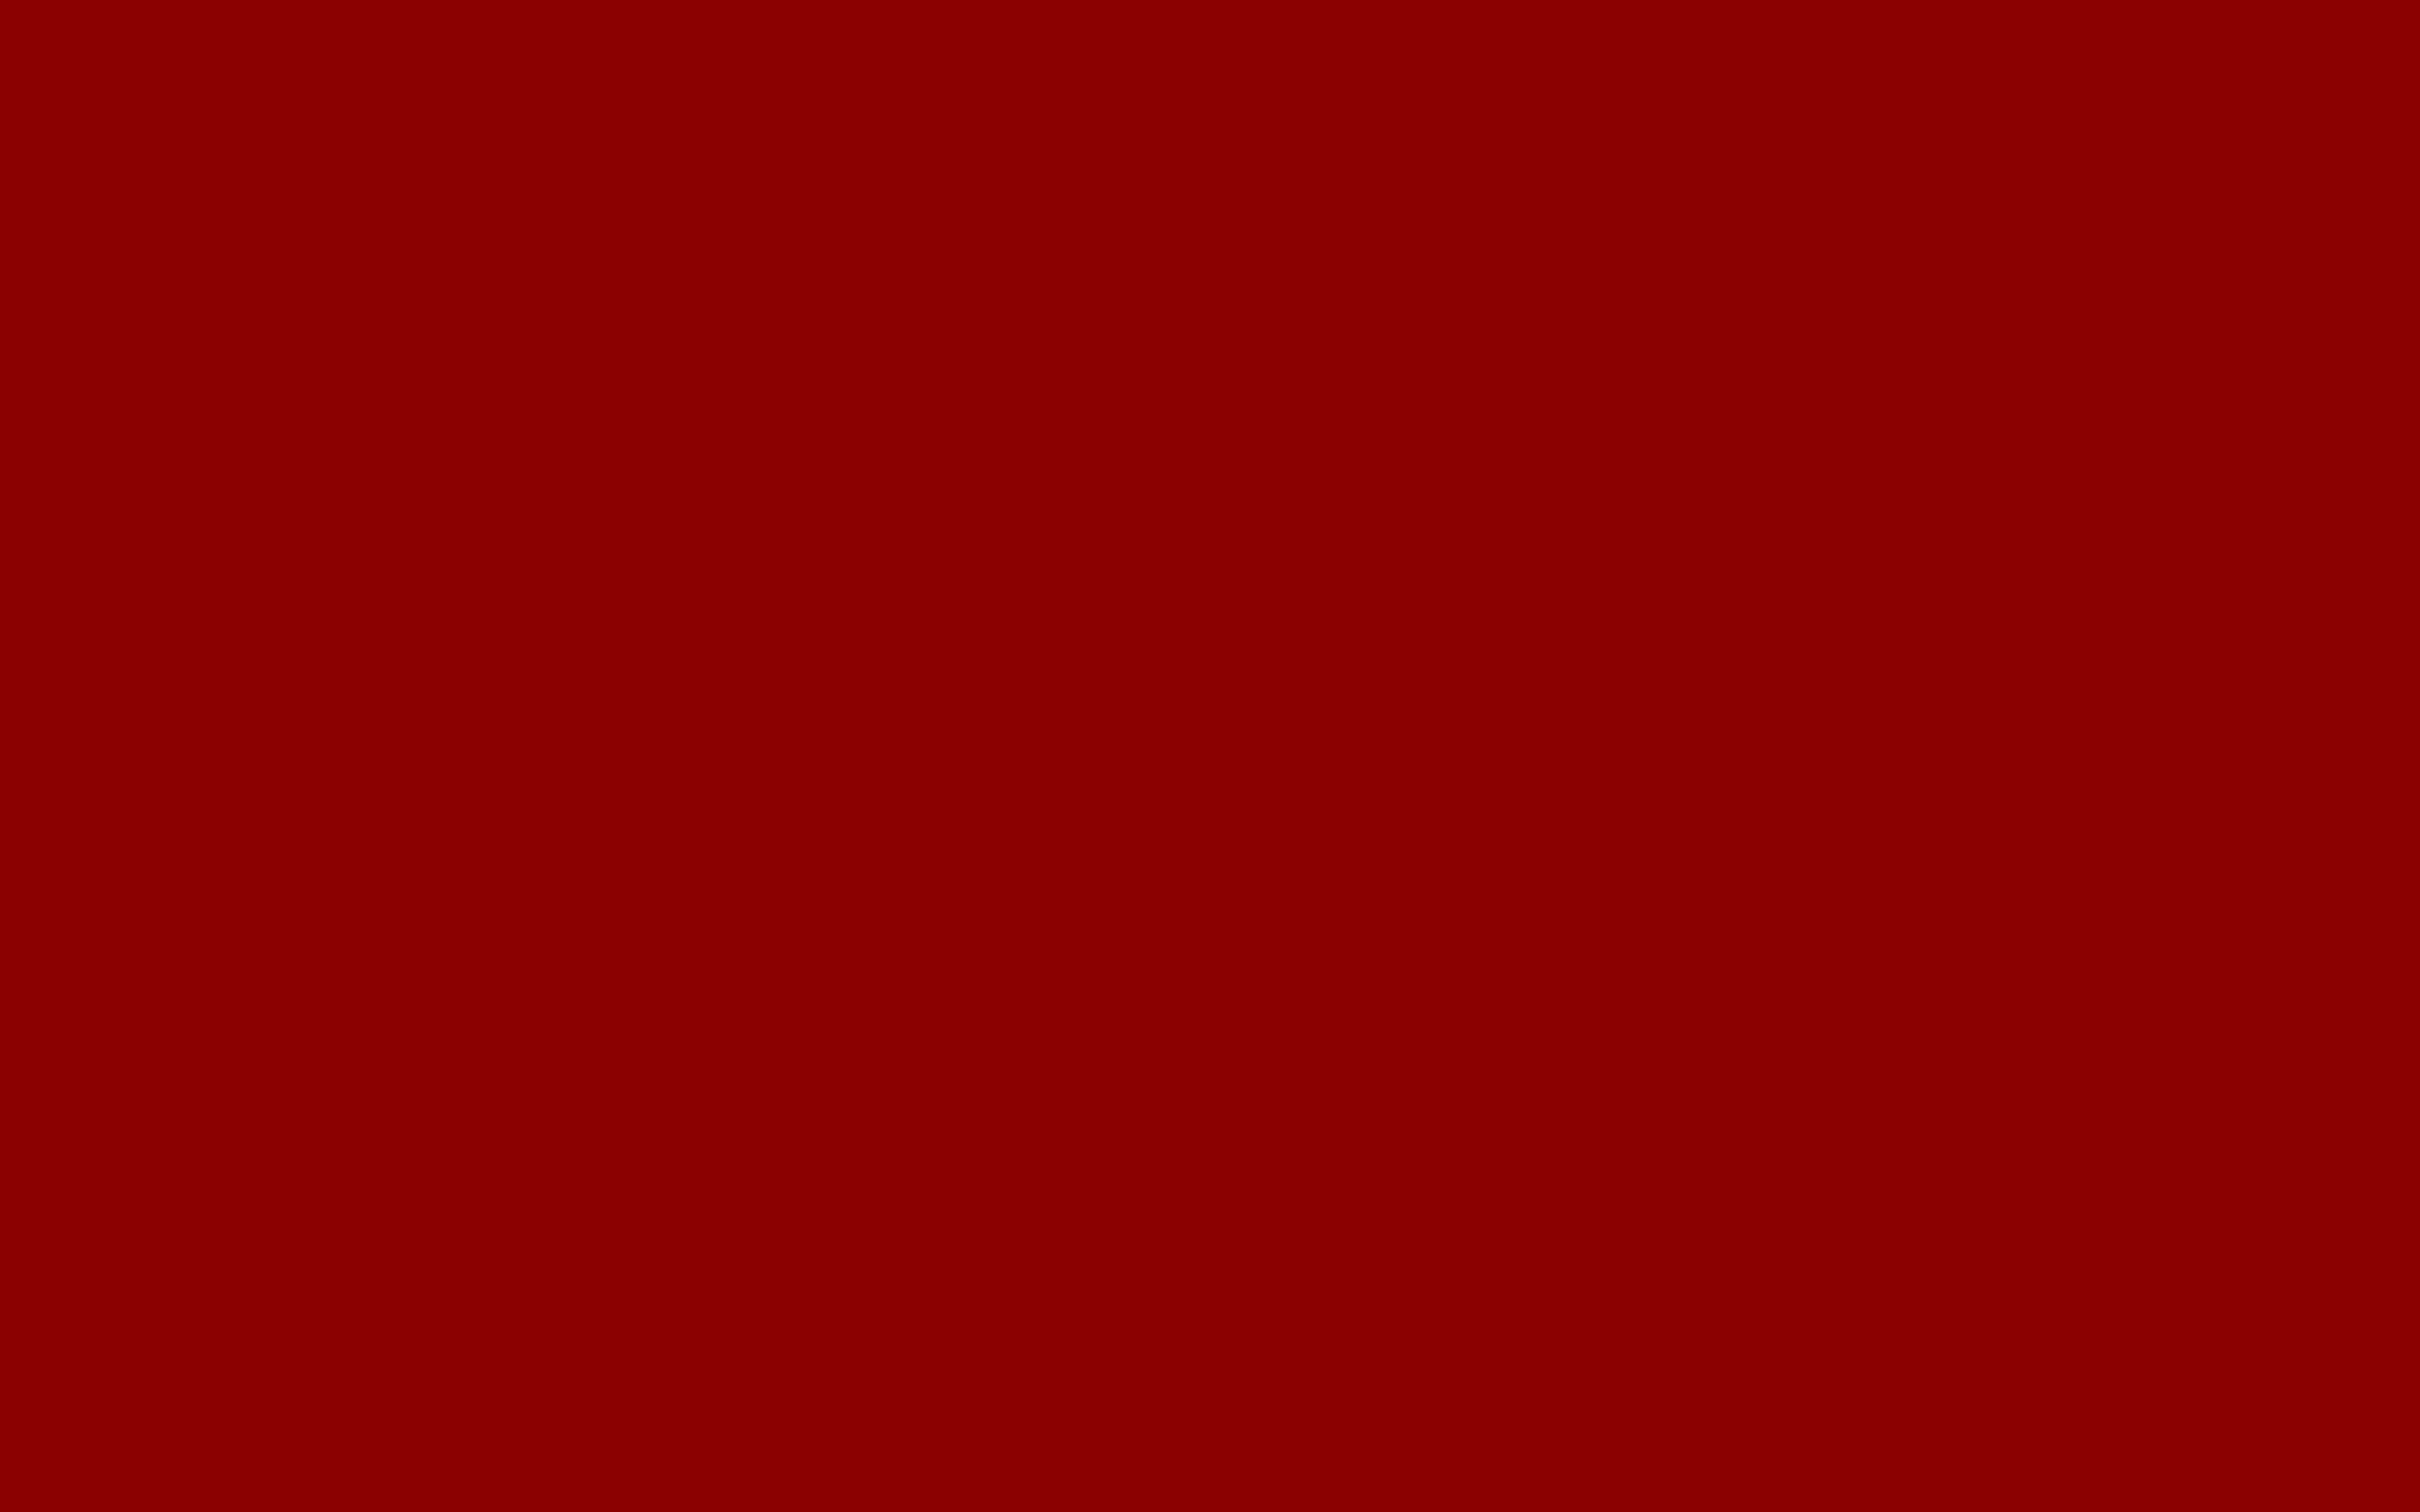 2560x1600 Dark Red Solid Color Background